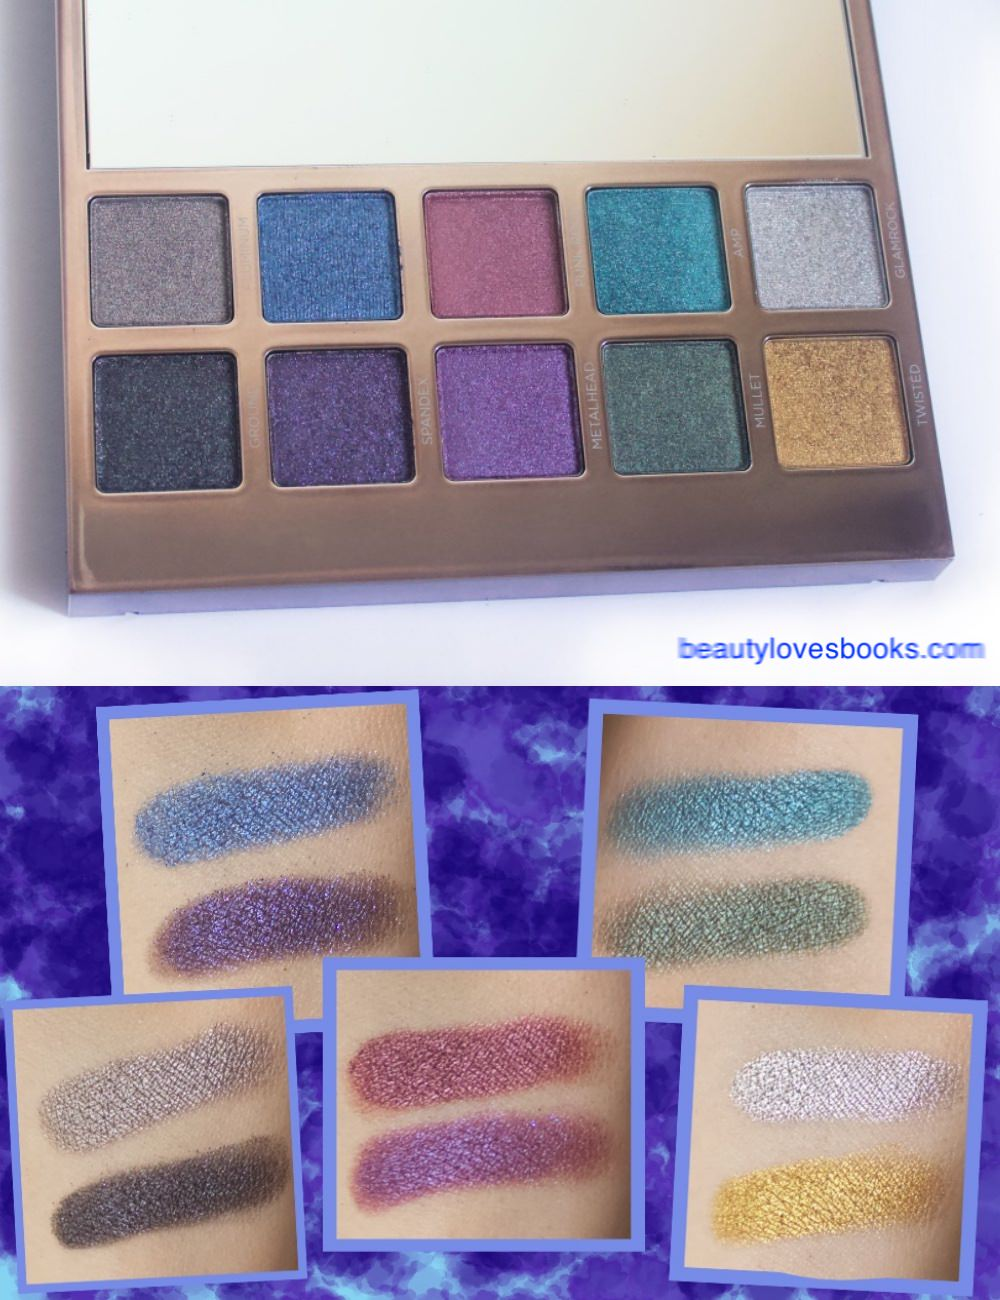 Urban decay Heavy metals eyeshadow palette brights swatches